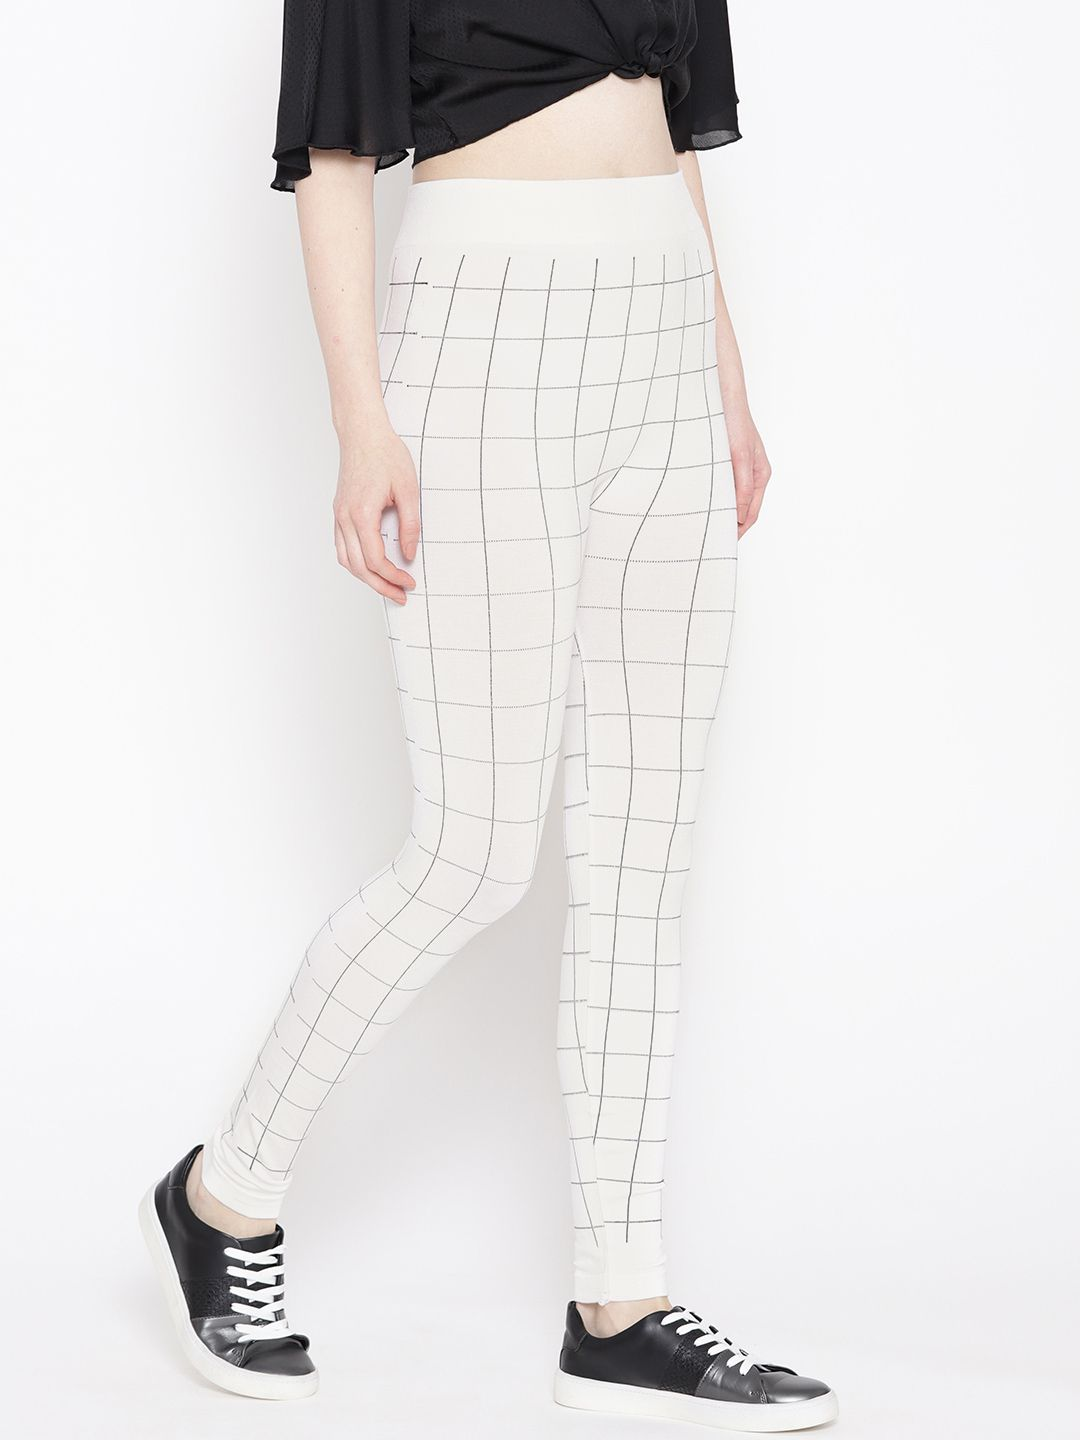 Ants Rayon Jeggings - White